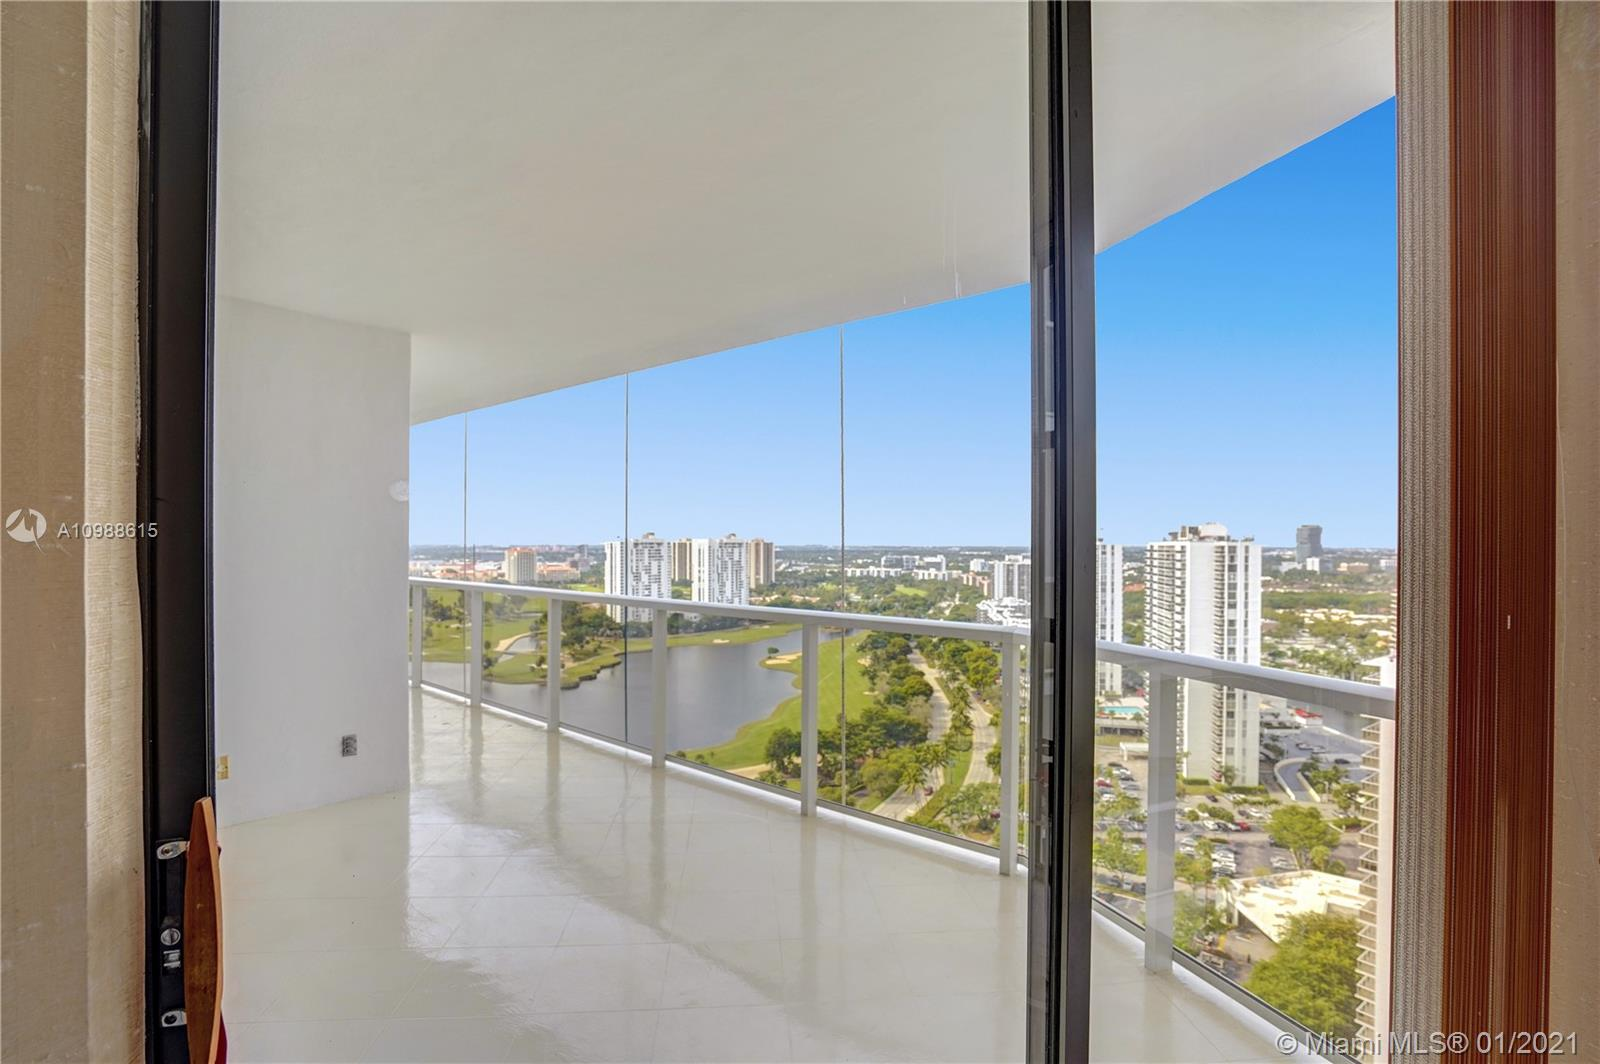 Photo of 20281 Country Club Dr #2407, Aventura, Florida, 33180 - Elegant club house with intracoastal view.